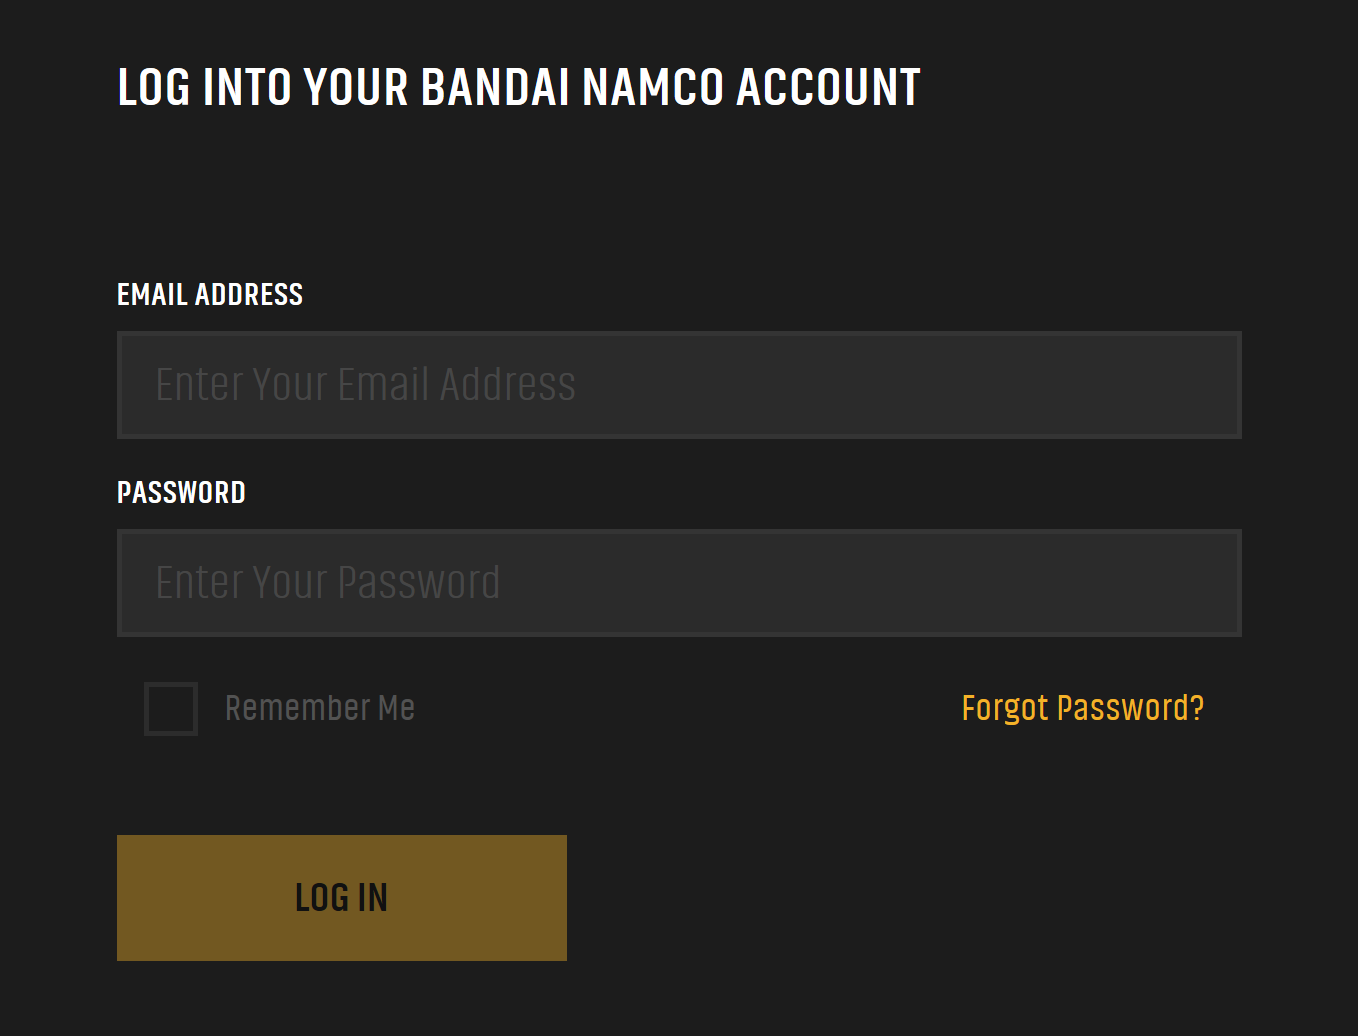 Log_into_your_bandai_namco_account.png